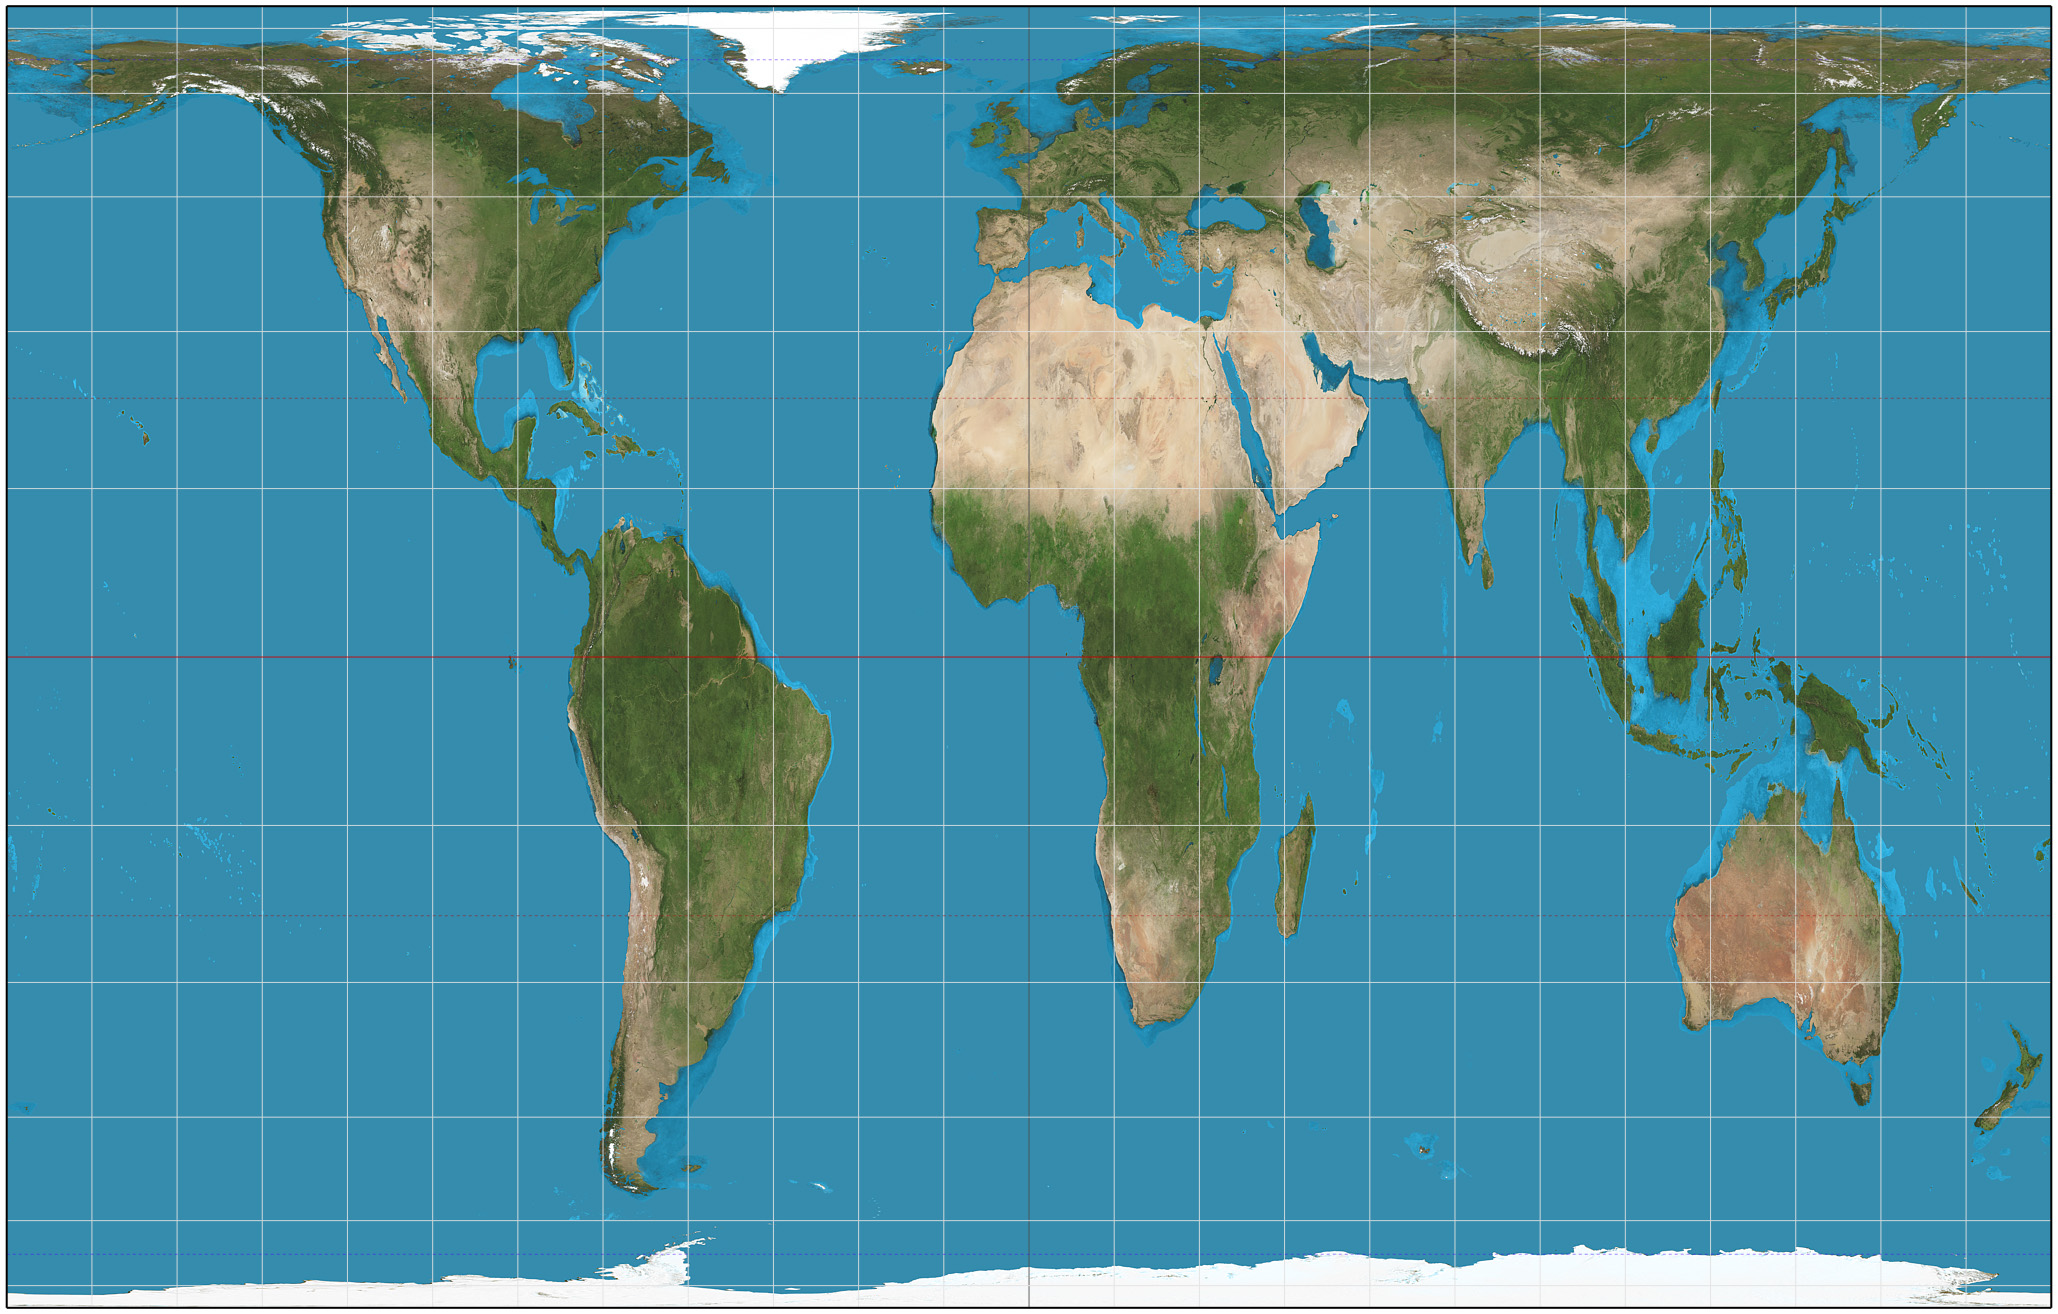 Gall–Peters projection - Wikipedia on peters projection map vs mercator, accurate scale map of globe, flat map and globe, peters projection map with scale, peters map of the world, peters projection of the world,